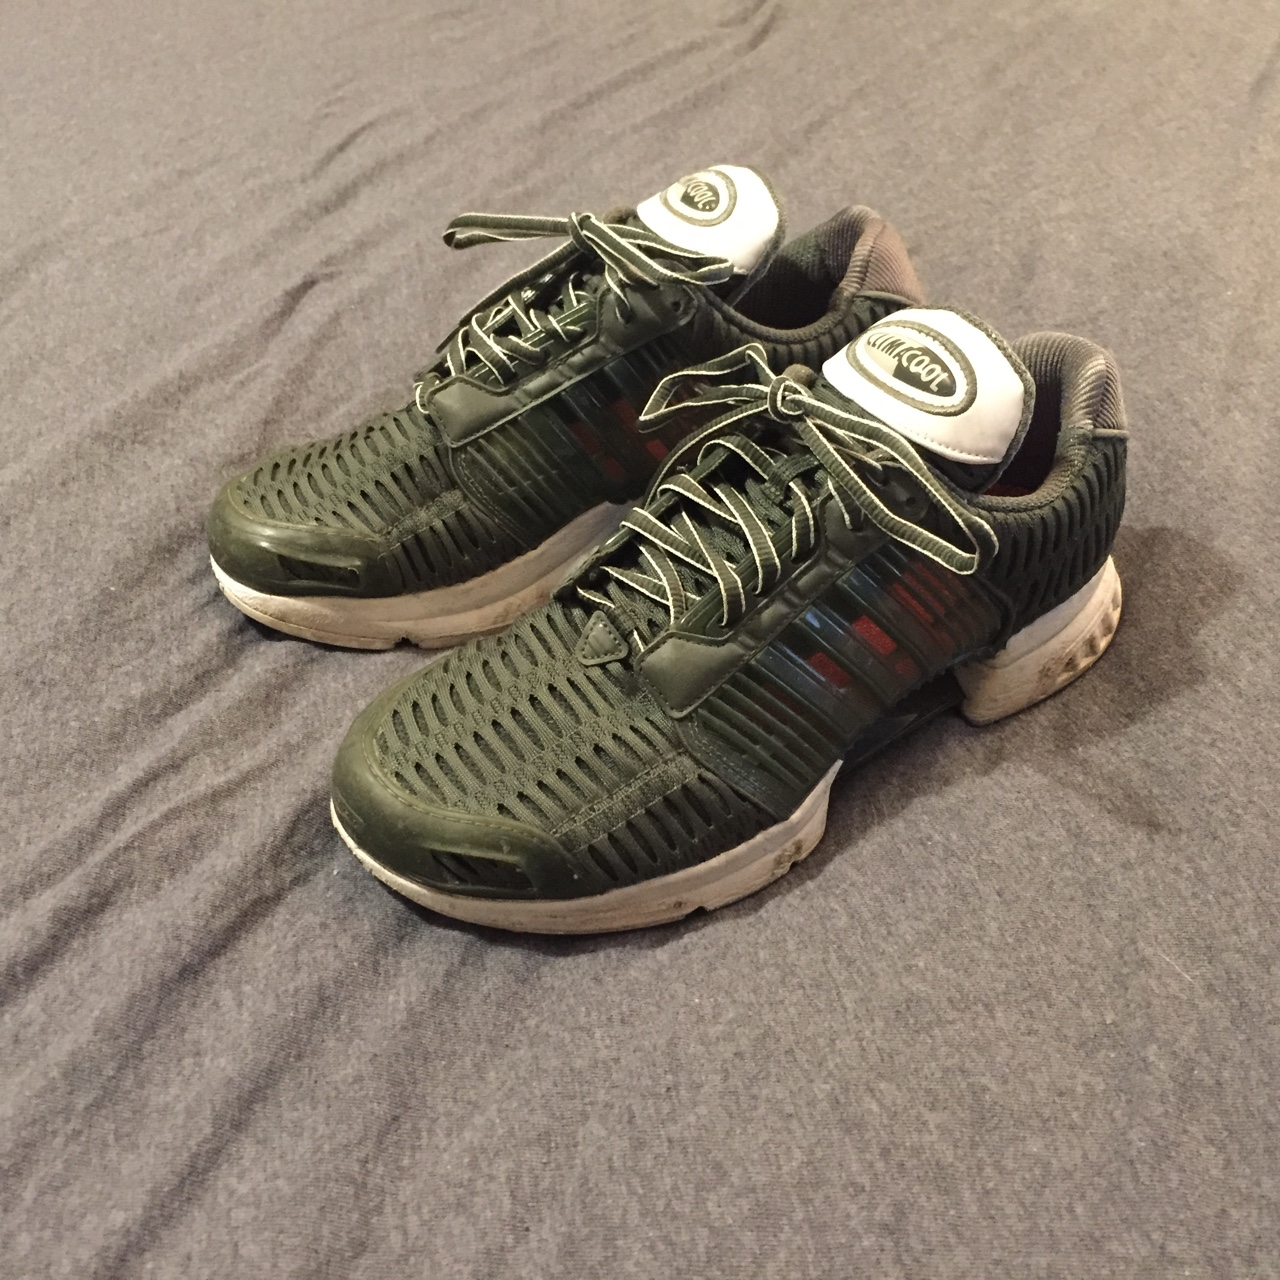 Barely worn Adidas clima cool trainers in...